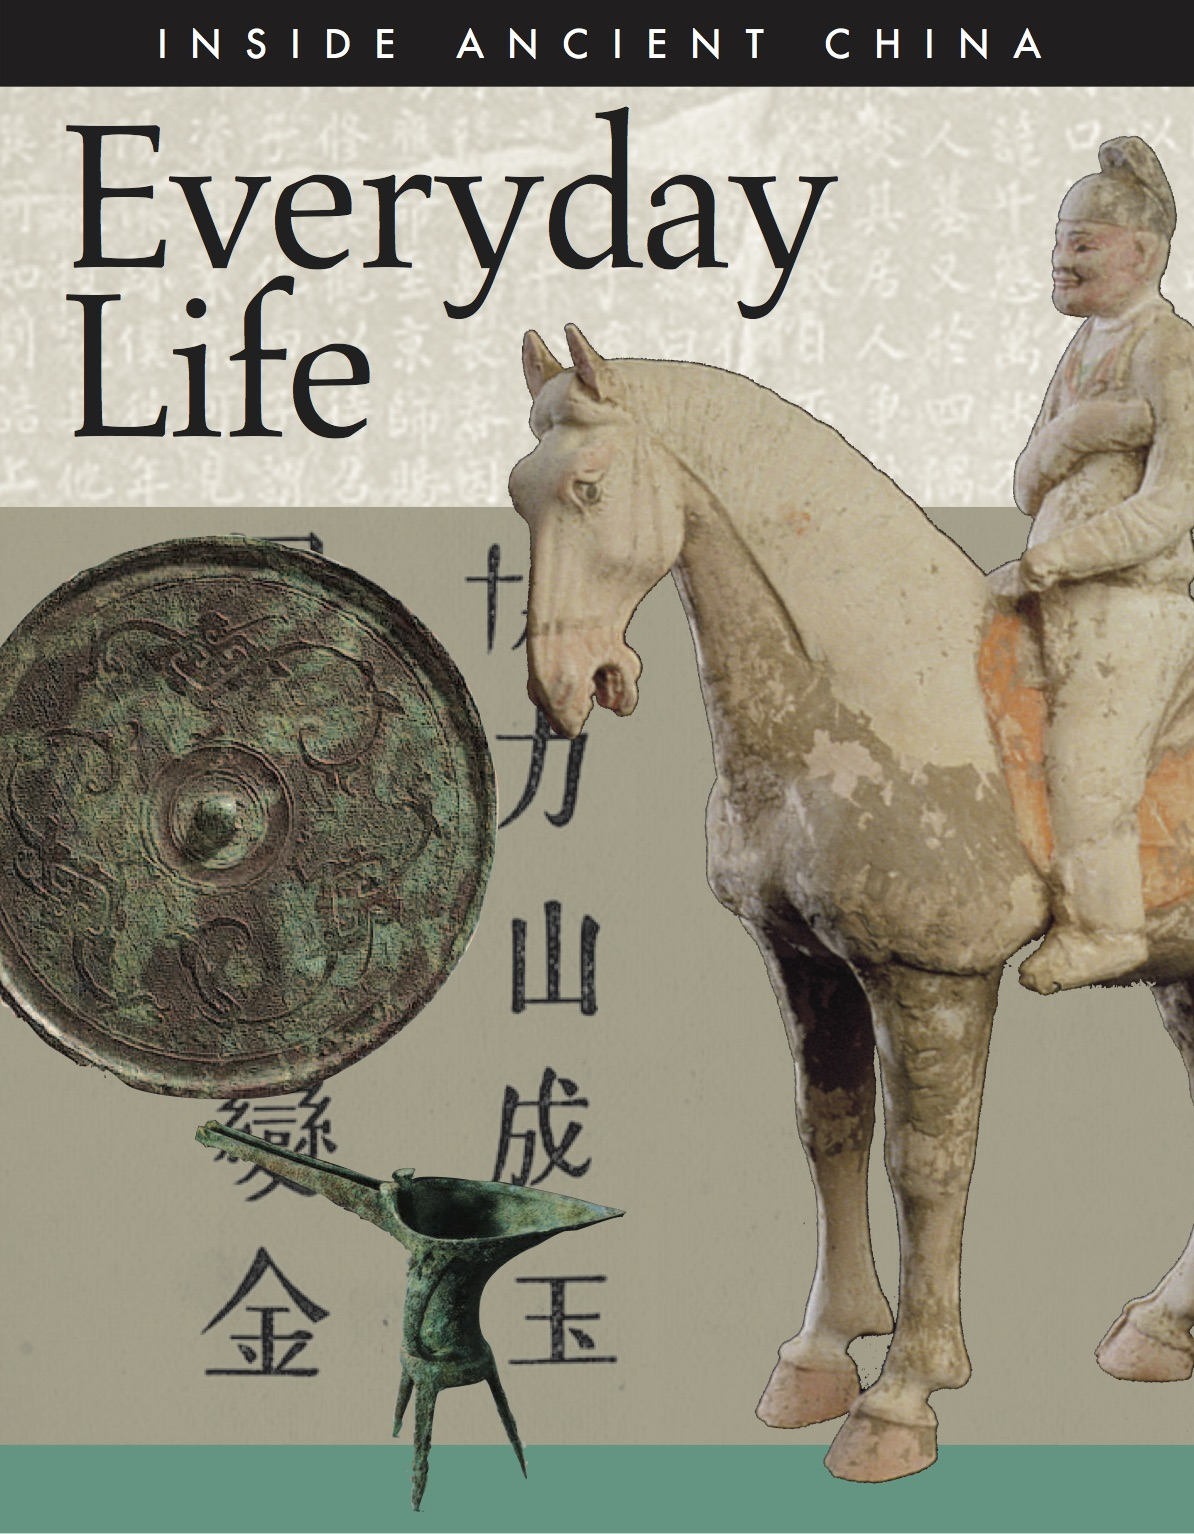 Inside Ancient China: Everyday Life